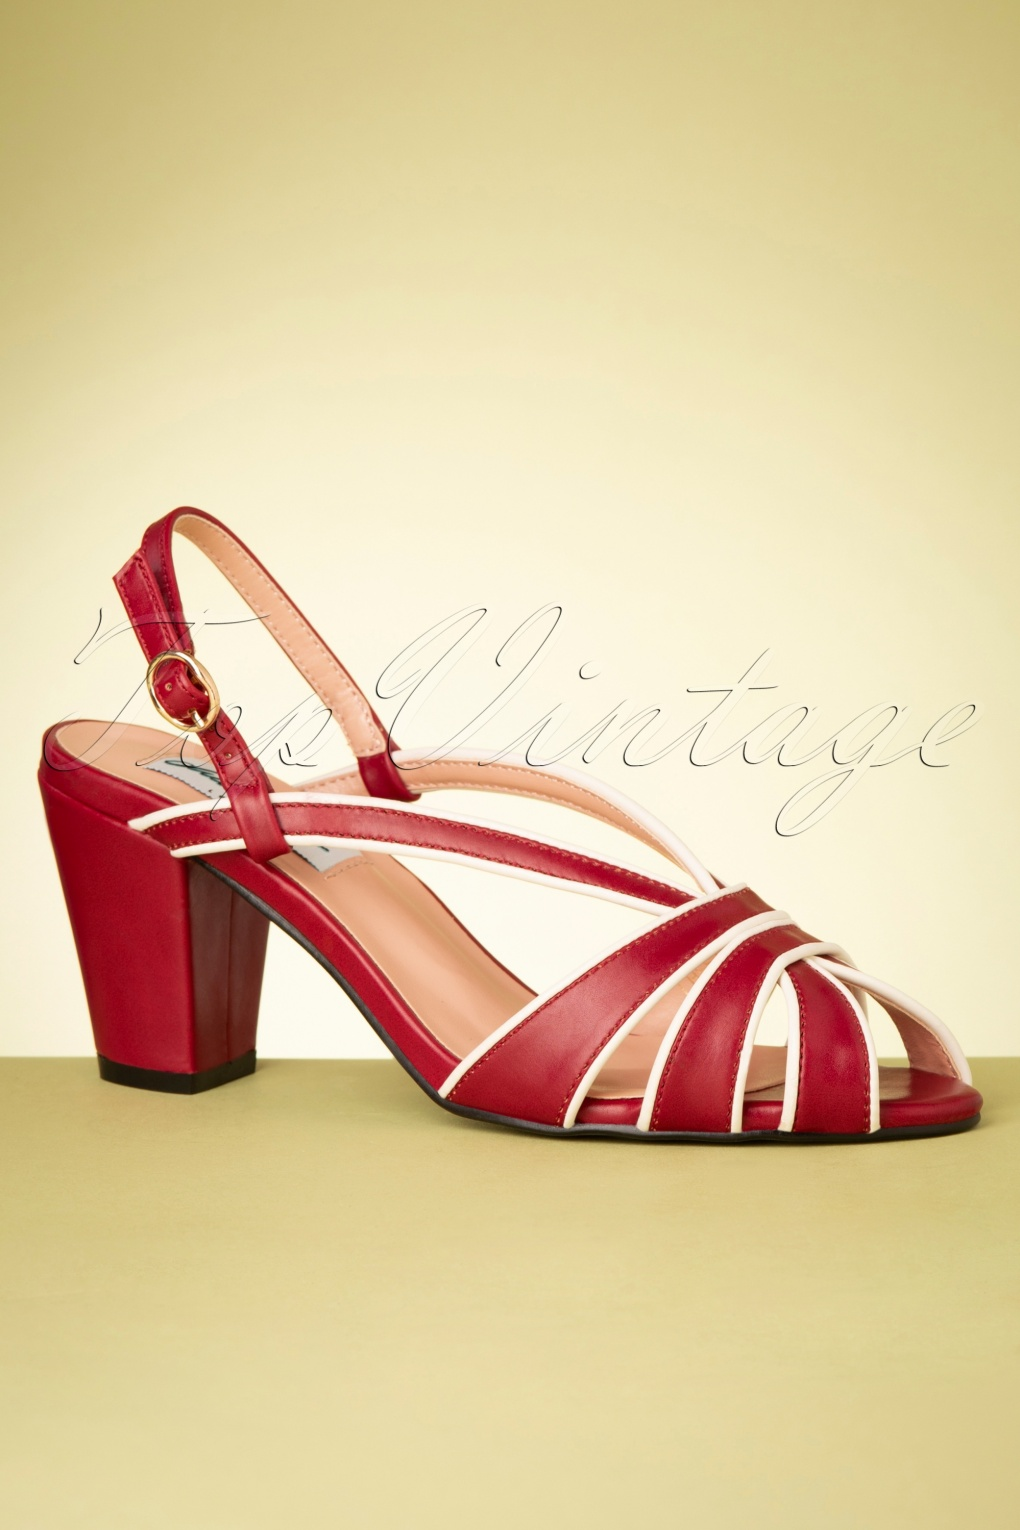 1950s Style Shoes | Heels, Flats, Boots 50s Lila High Heeled Peeptoe Sandals in Red £51.90 AT vintagedancer.com